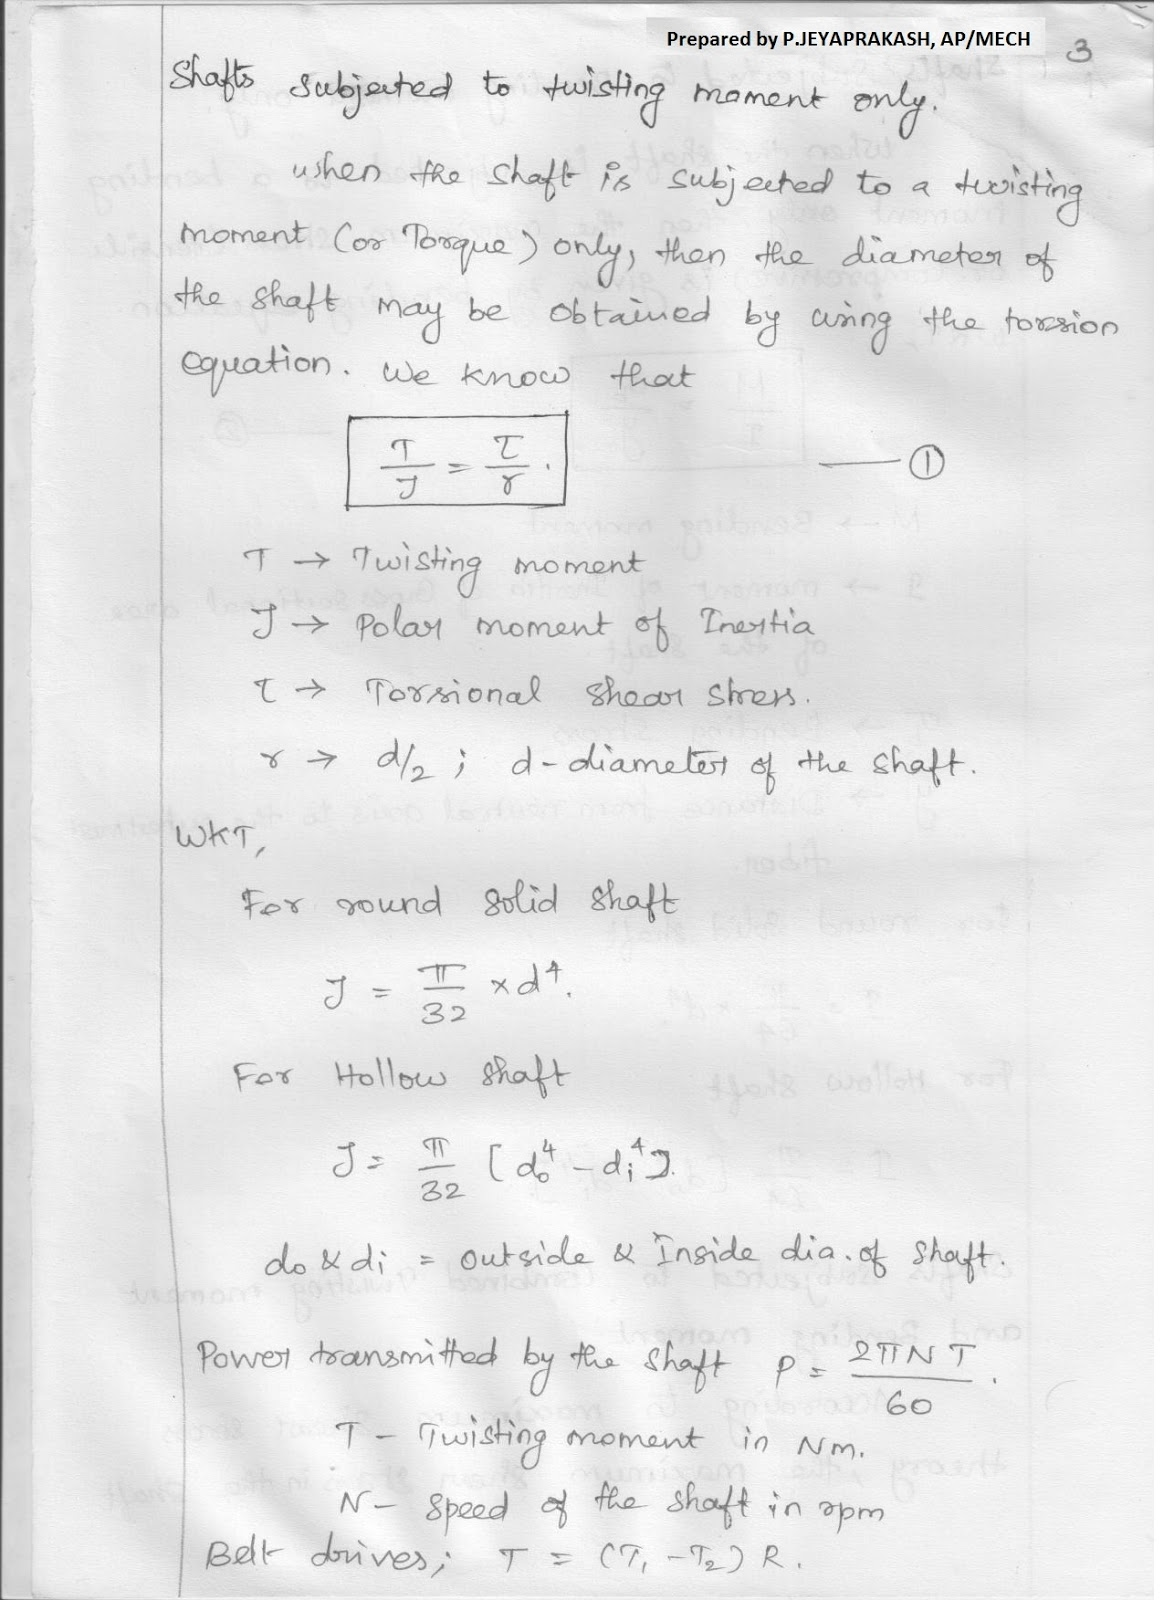 BEST REFERENCE FOR ENGINEERING STUDENTS: ME6503 Design of